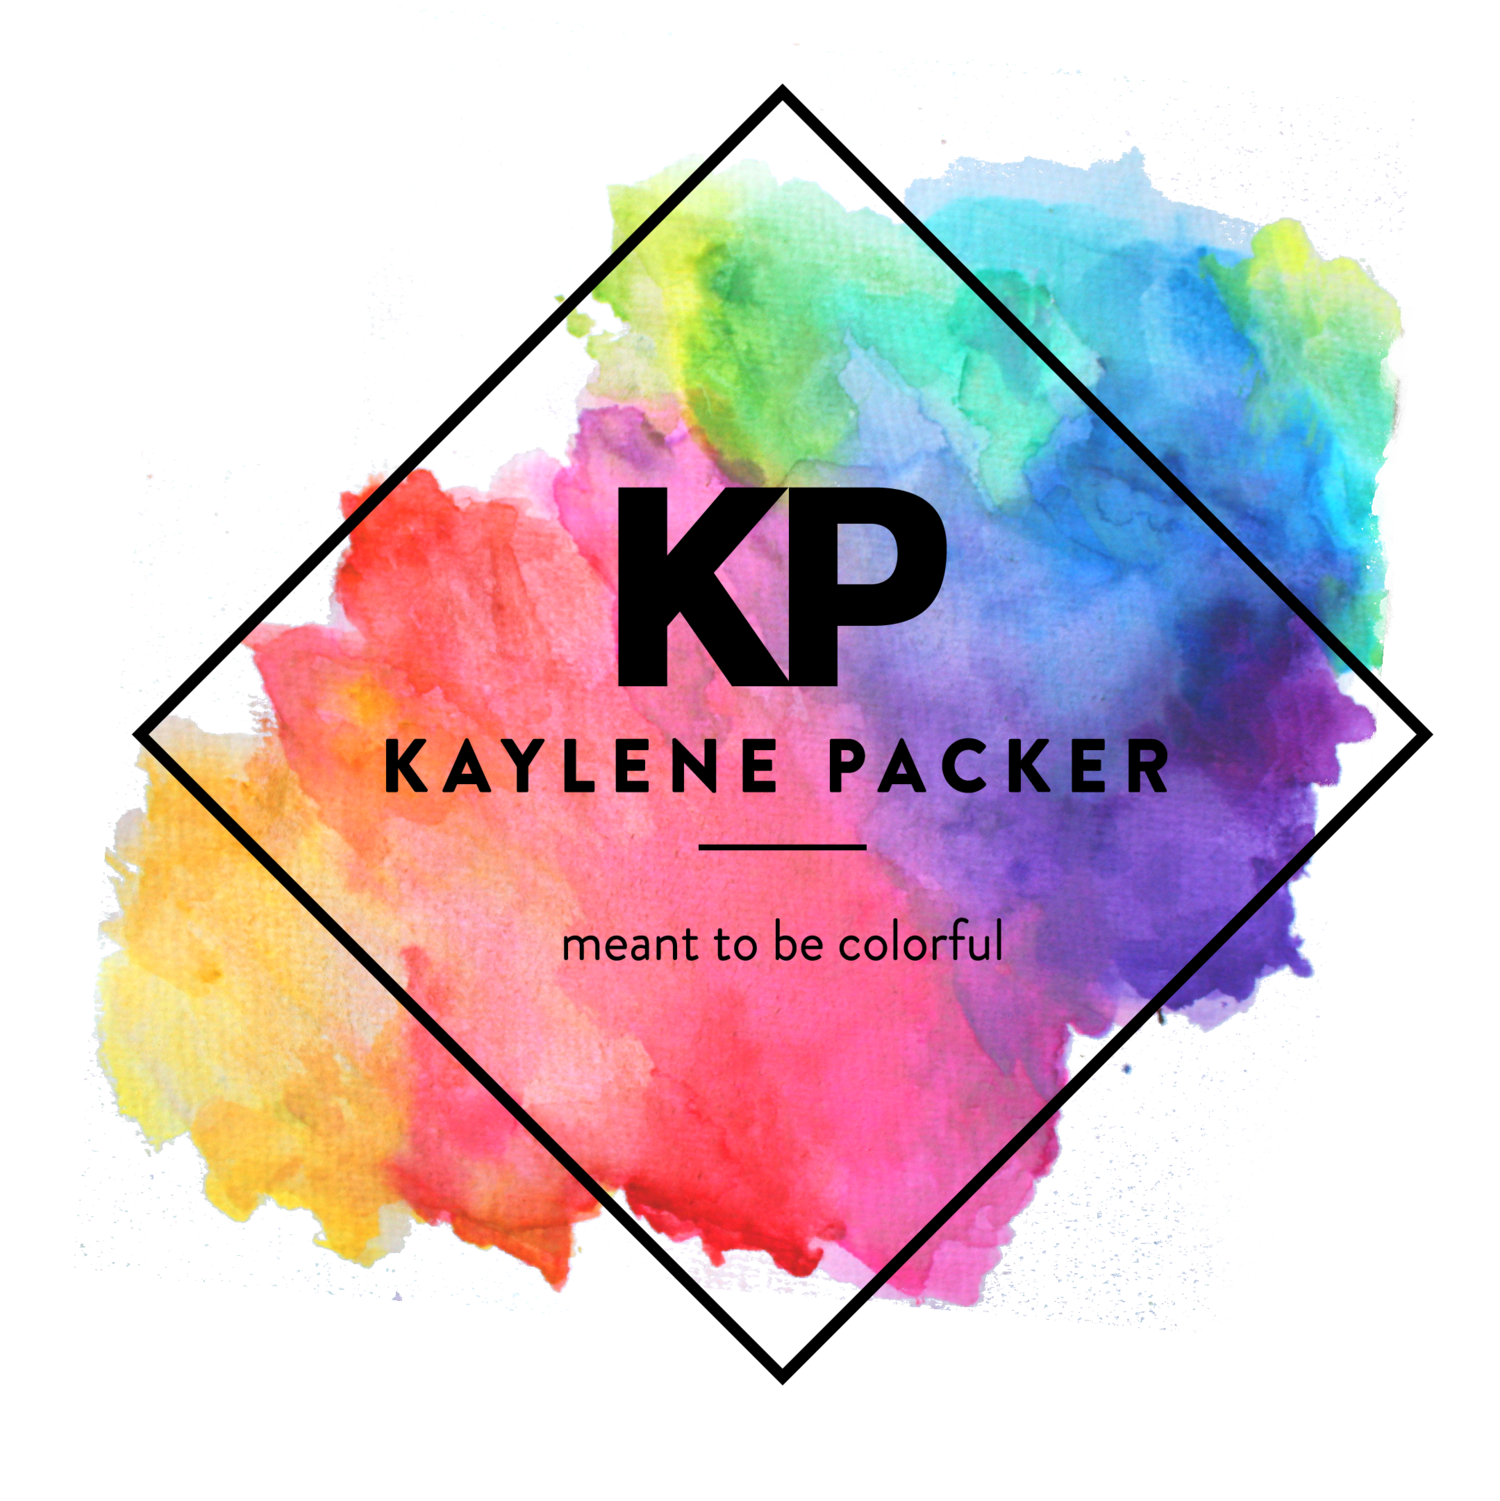 Kaylene Packer